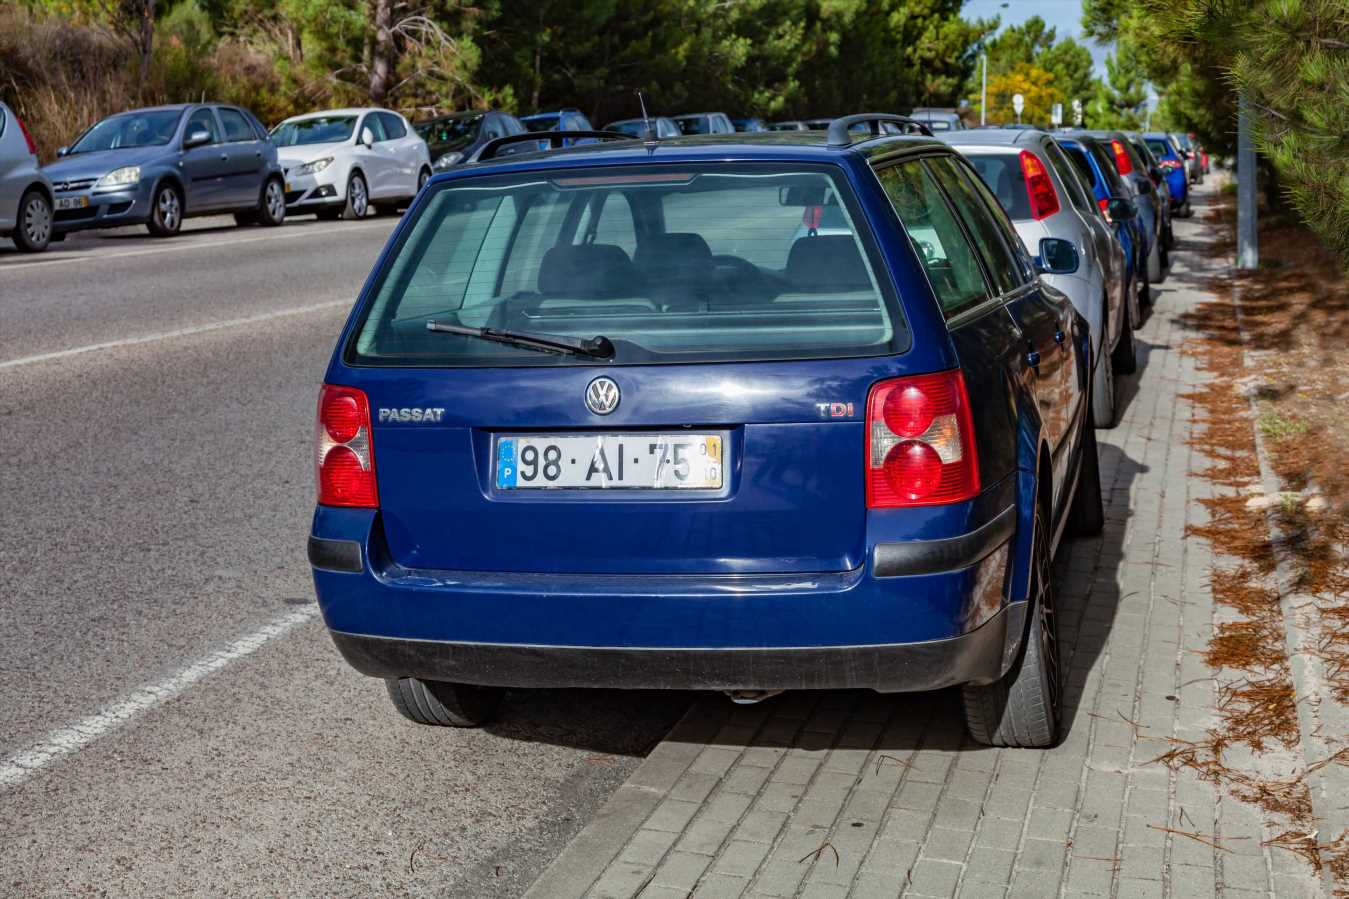 Drivers could soon be hit with hefty fines for parking on pavements across the country